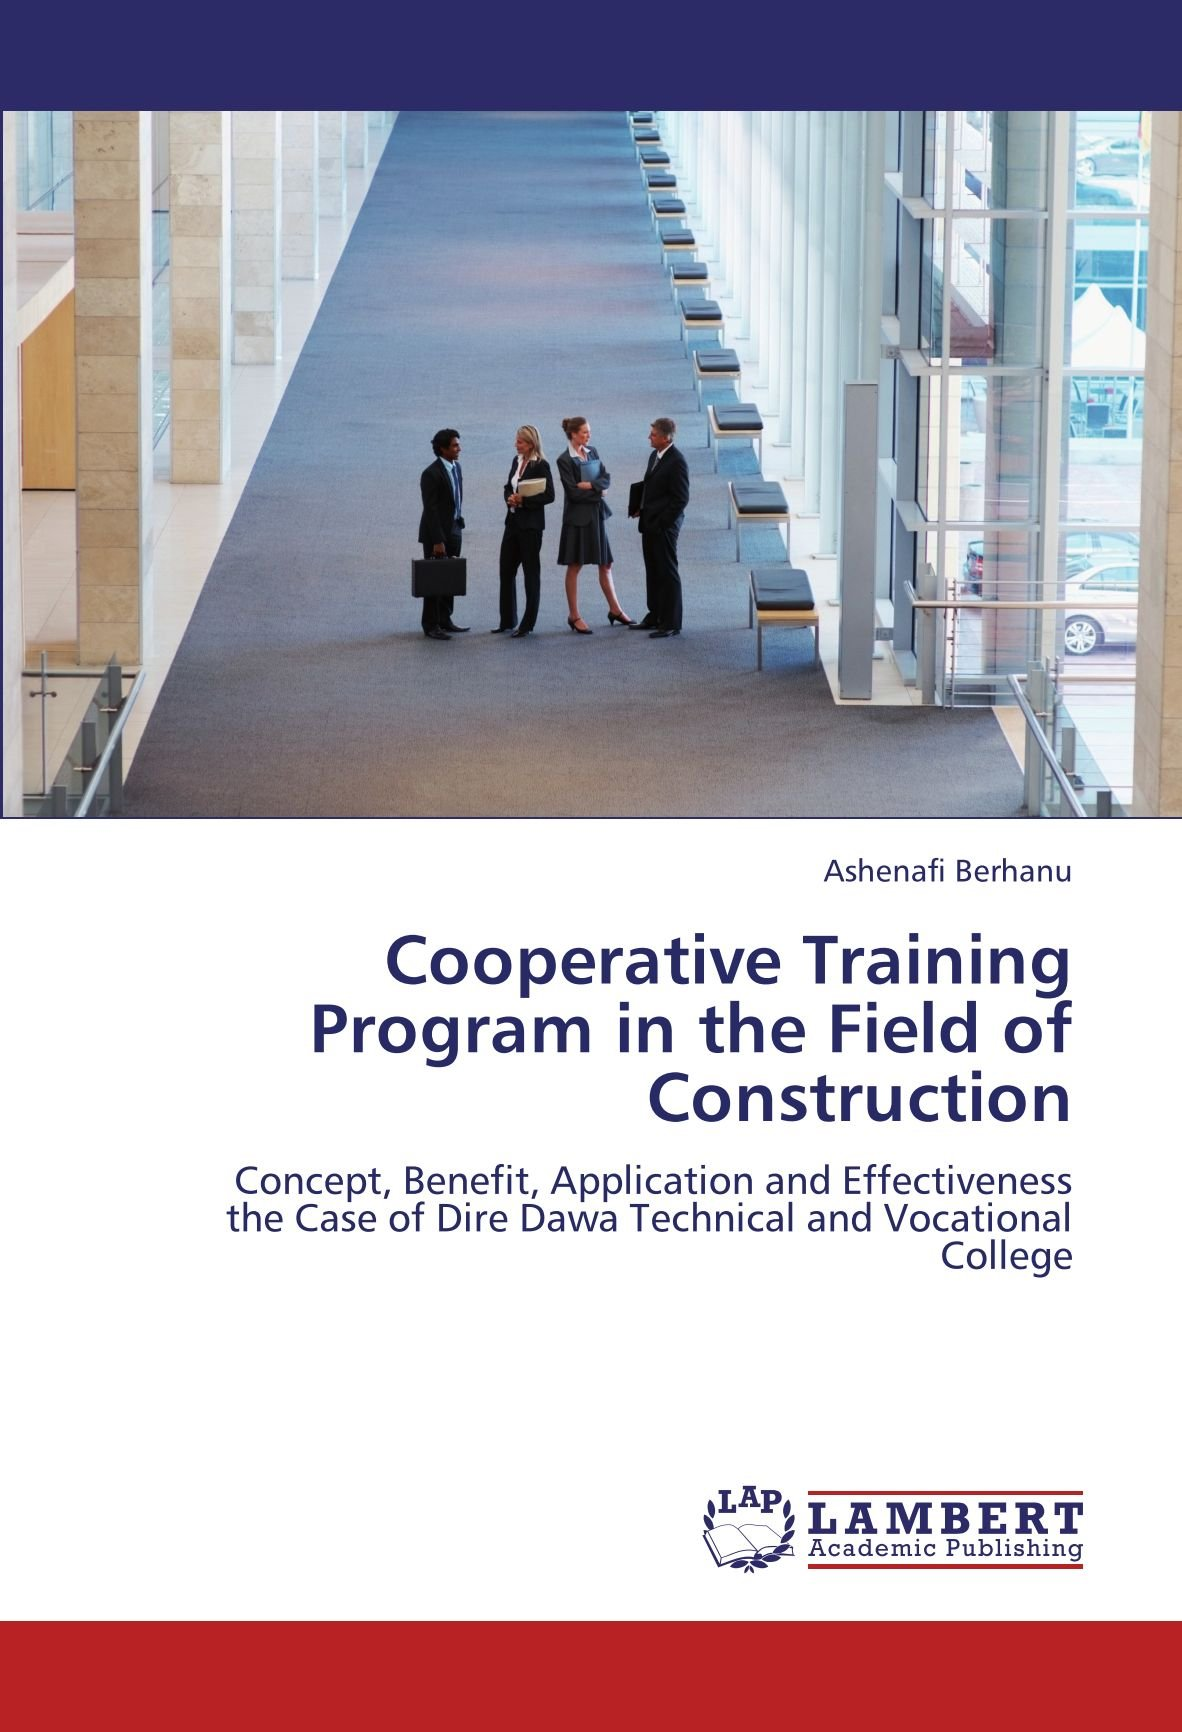 Cooperative Training Program in the Field of Construction